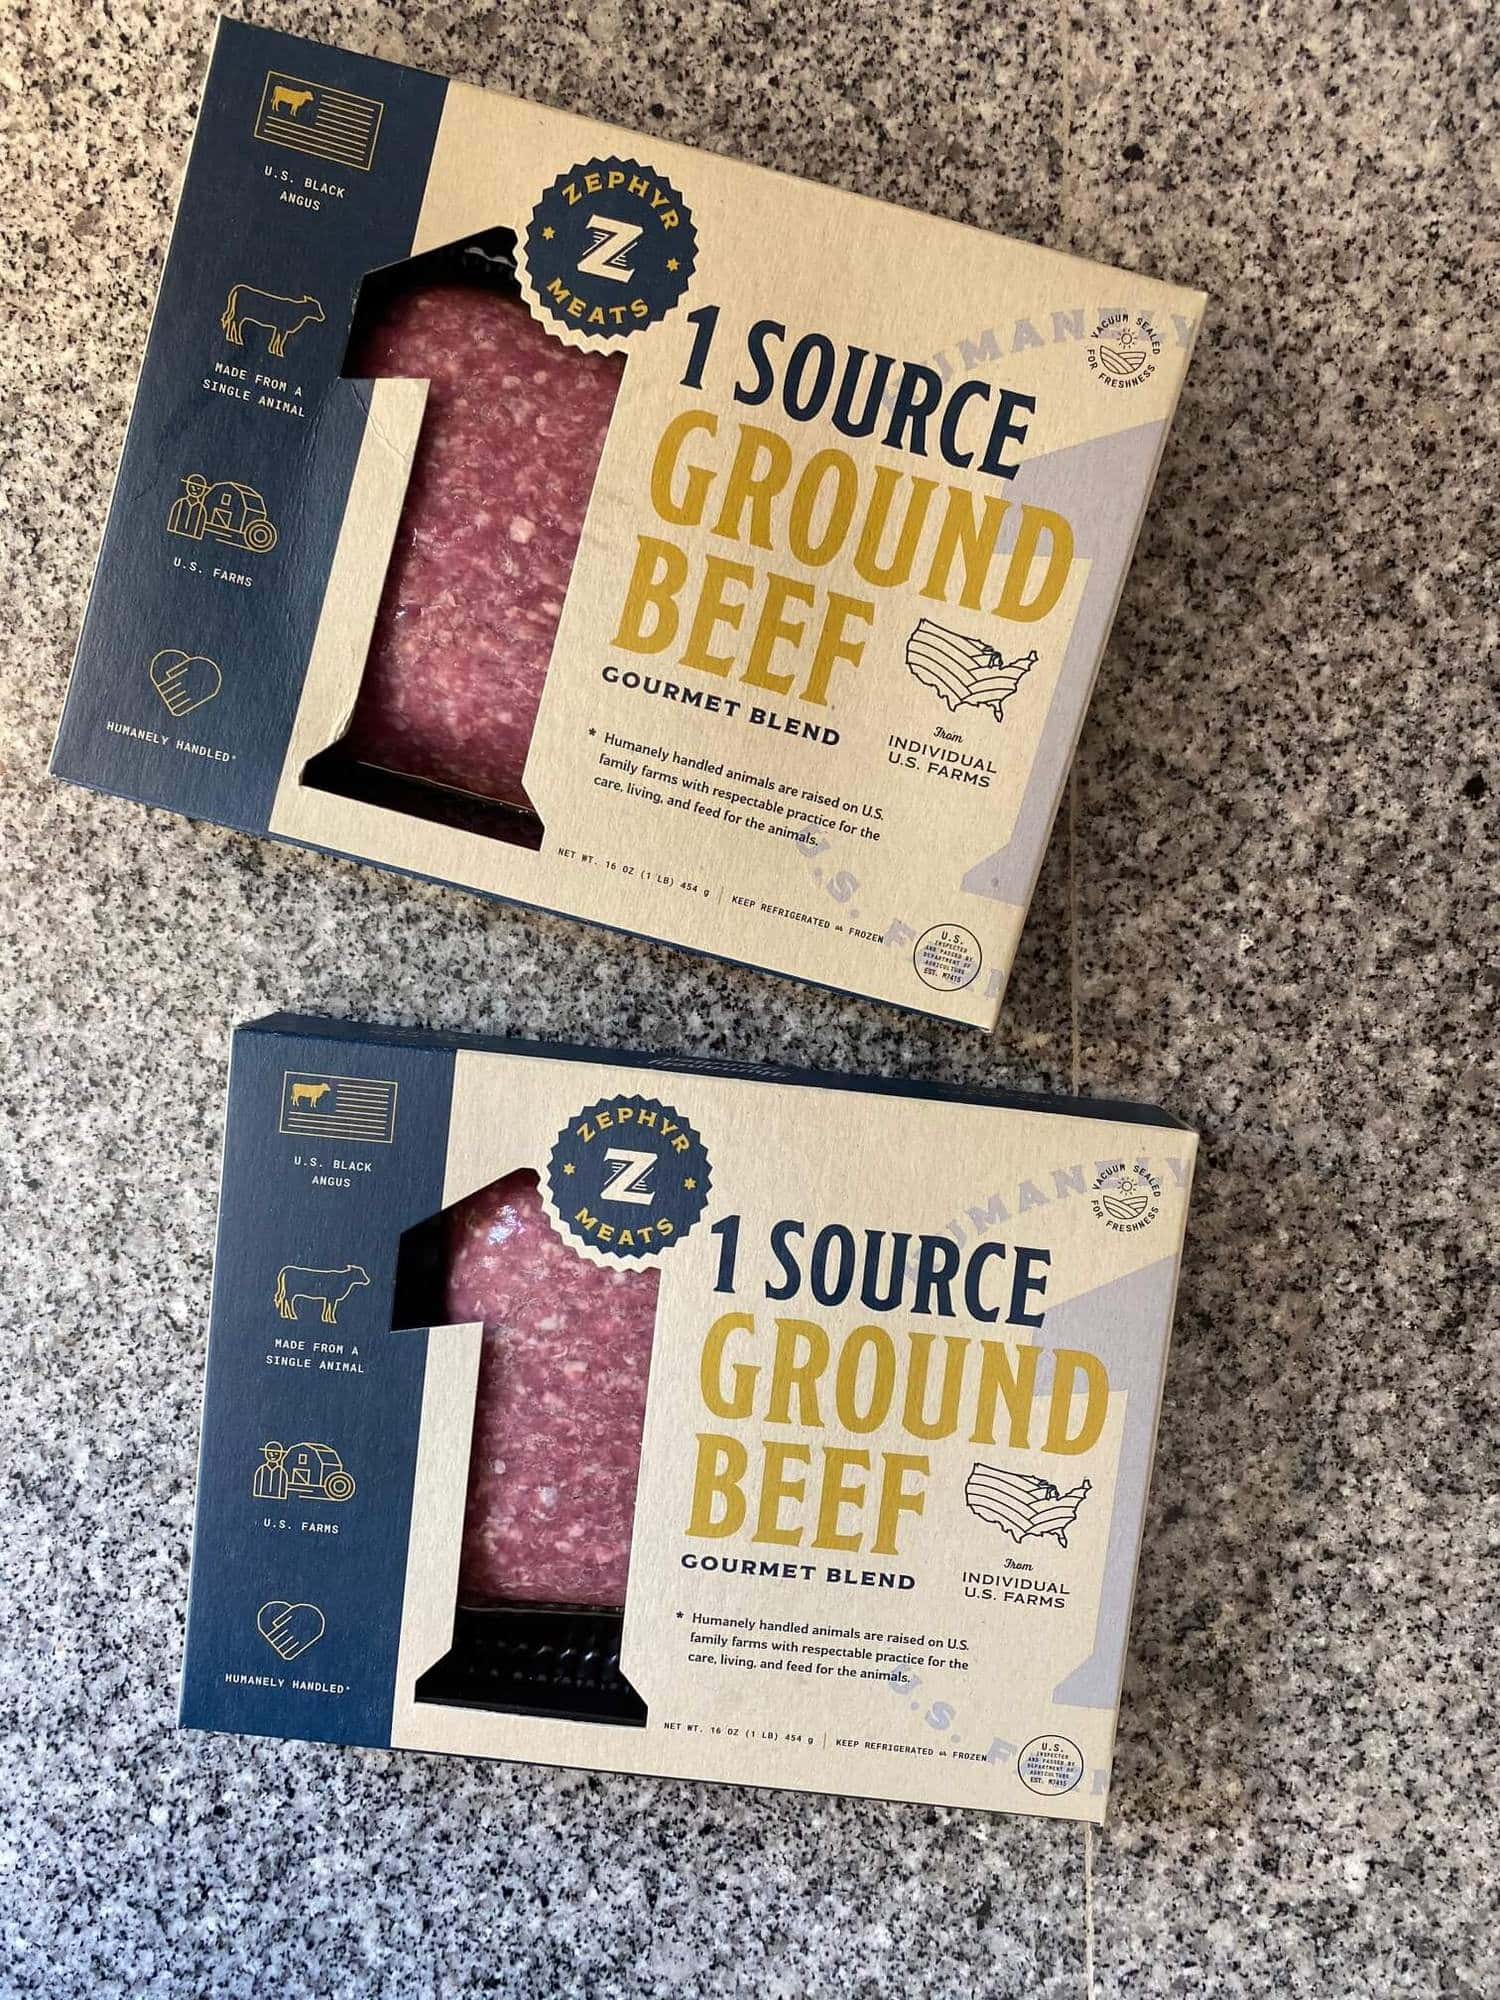 Two packages of 1 Source Ground Beef on a blue granite countertop.